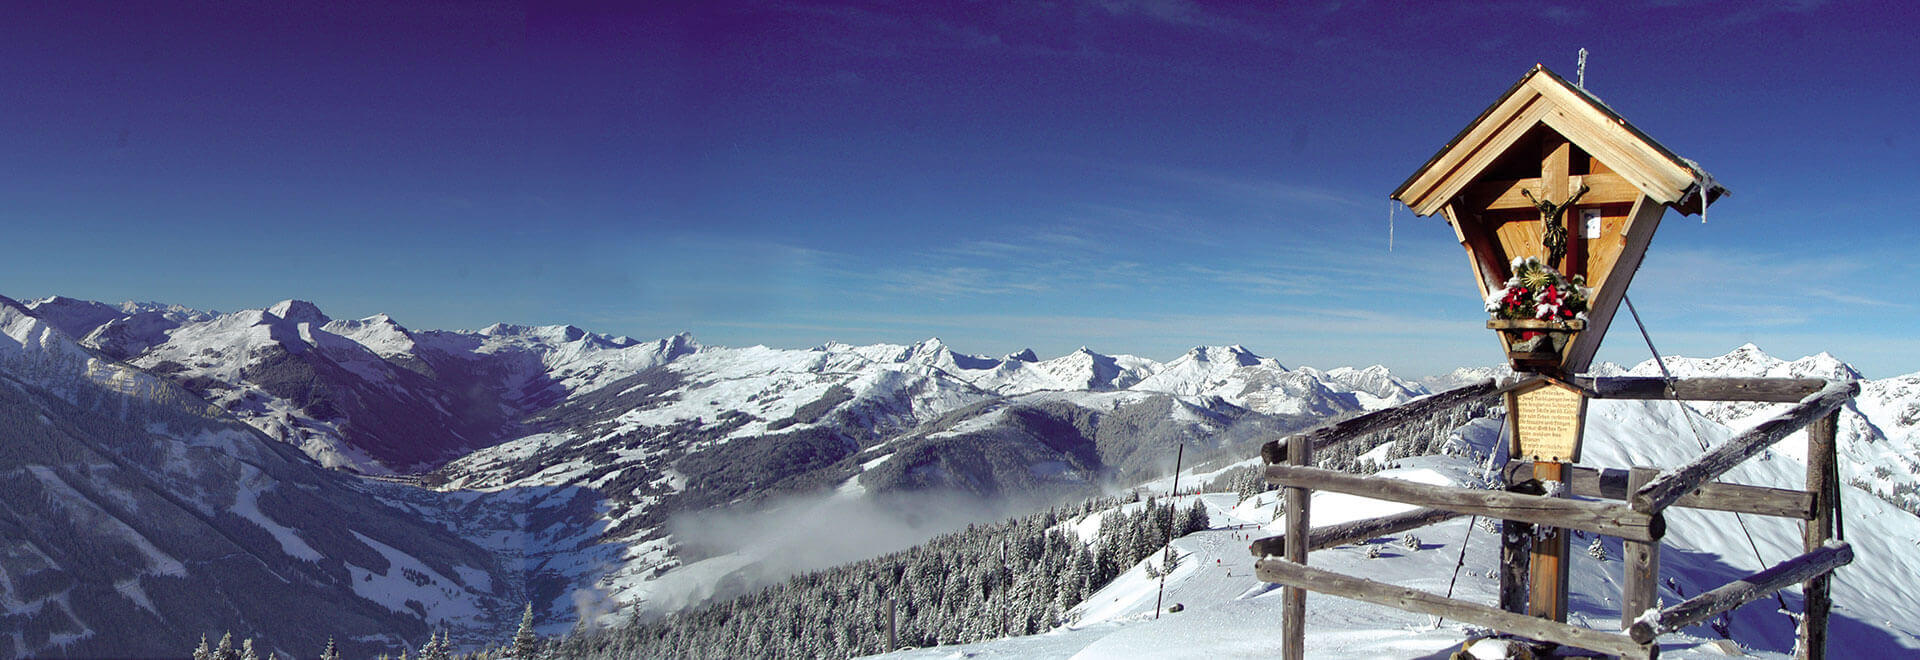 Winter in Saalbach Hinterglemm